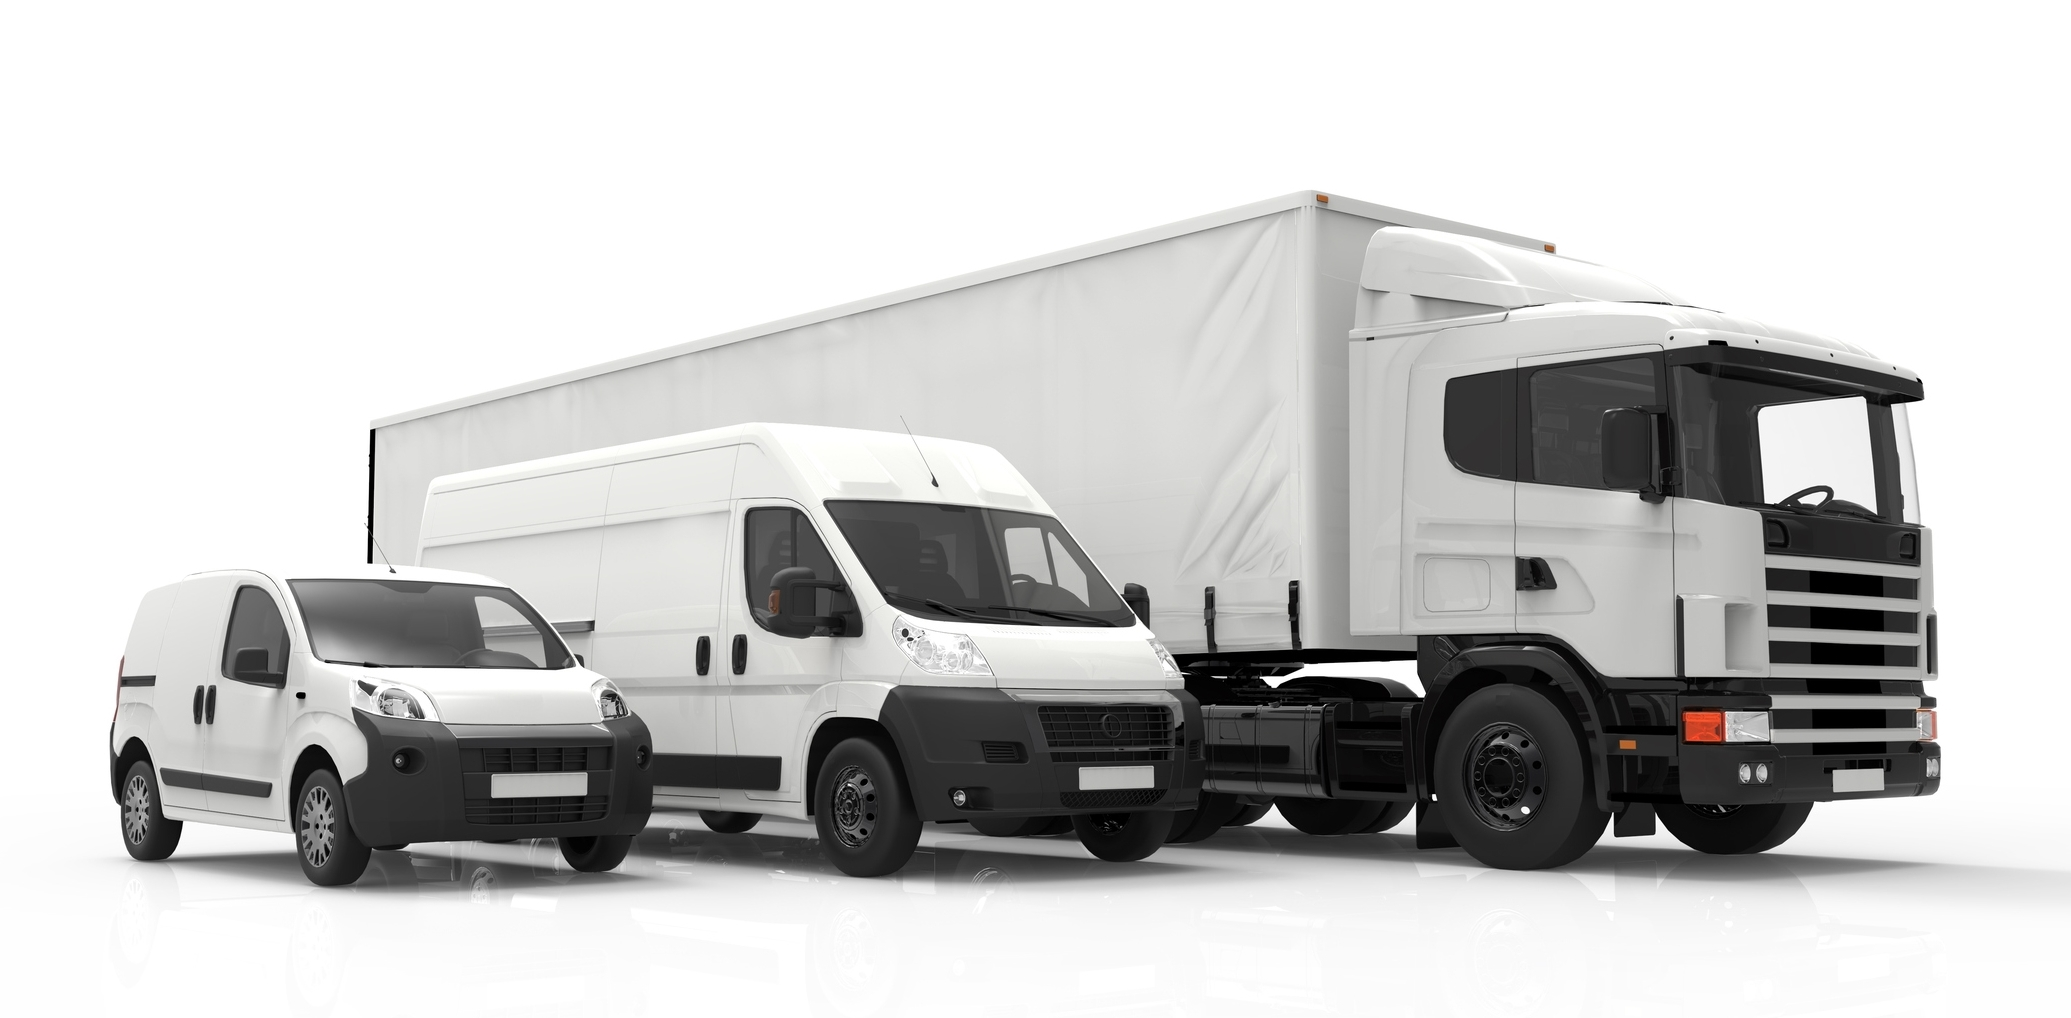 Fleet Management - DurRely understands down time, the cost of lost resources, and having a reliable vendor ready to assist you during your time of need. We pride ourselves on servicing you quickly, efficiently, and with impeccable, guaranteed service. Don't wait for someone to call you back. Enter your request online or give us a call any time (24/7).